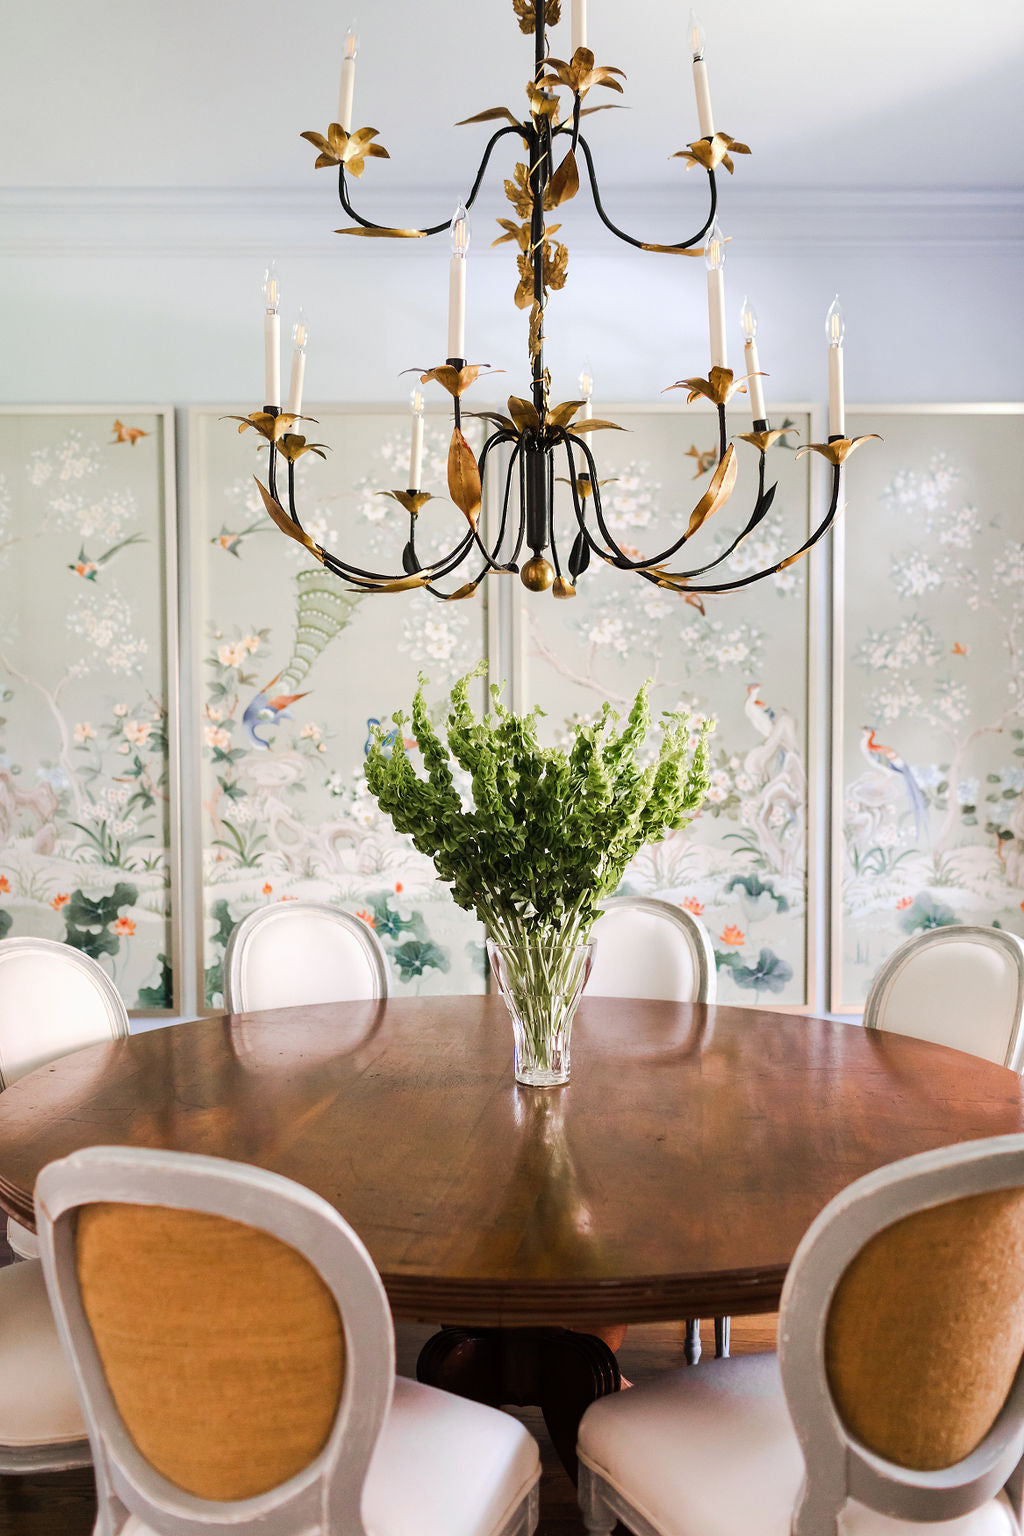 Dining room chandelier | 19th century Regency table | French balloon back chairs | Robert Crowder